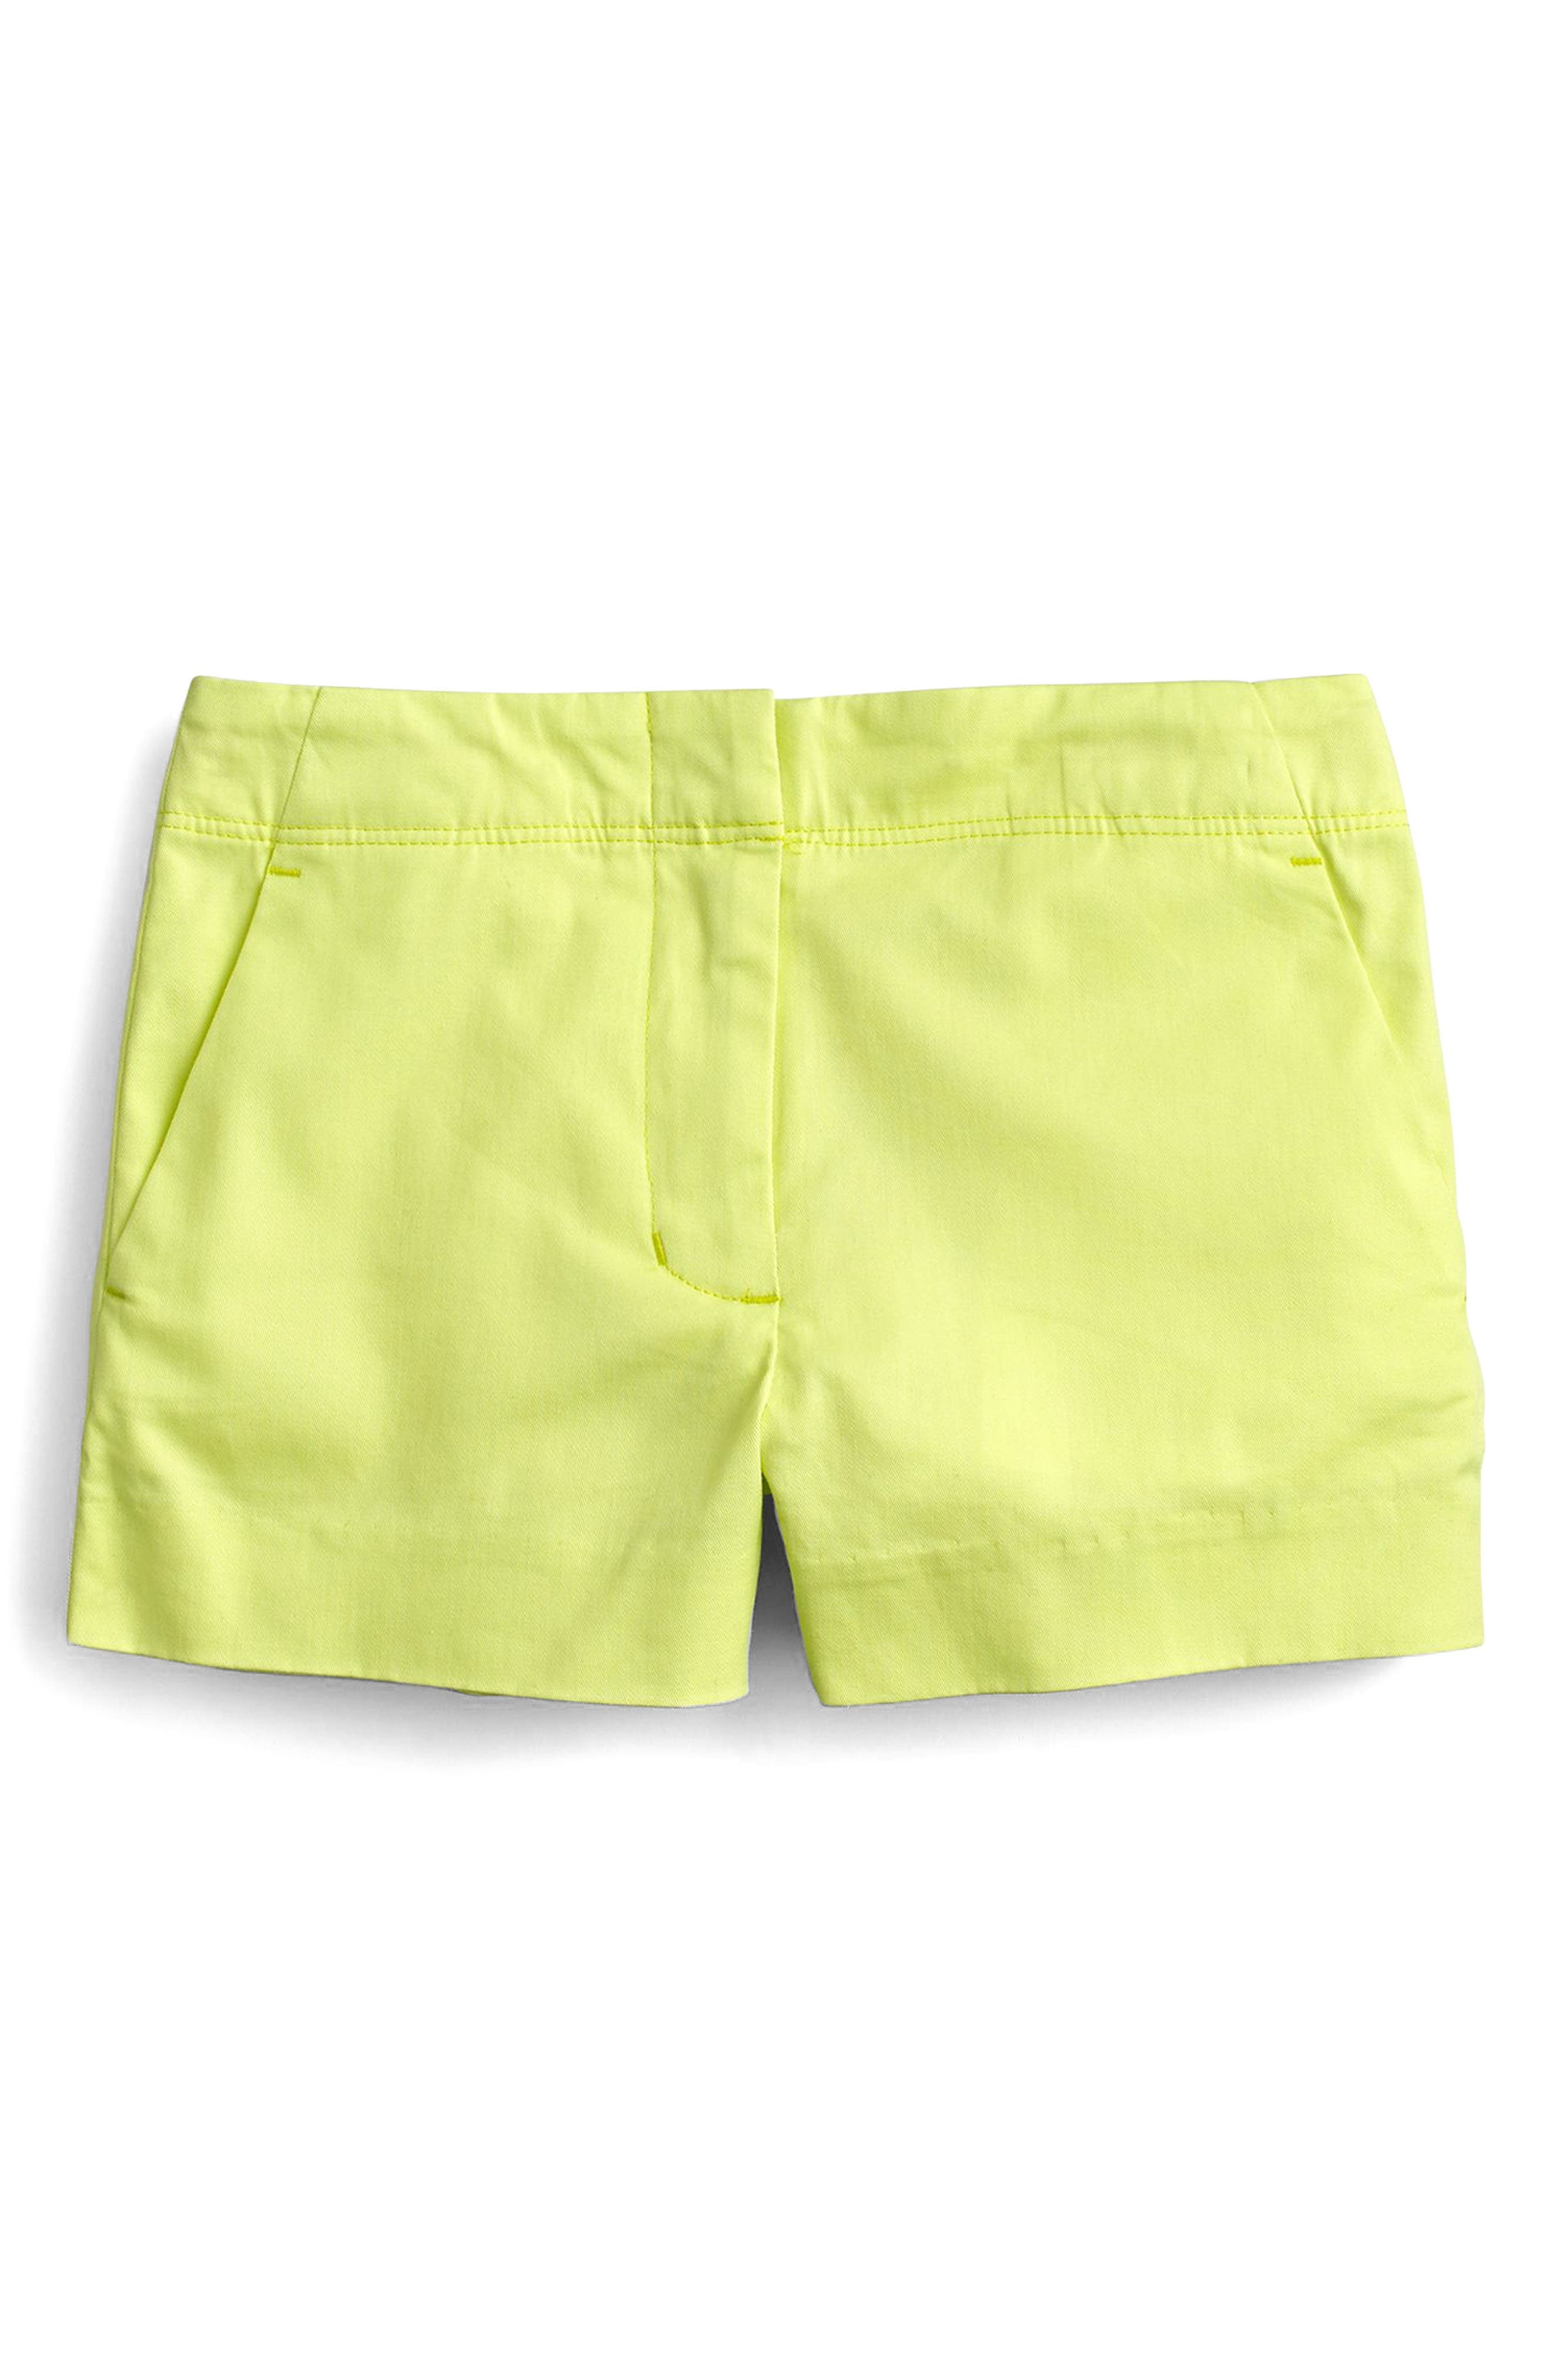 Frankie Stretch Cotton Shorts,                             Main thumbnail 1, color,                             Neon Citron